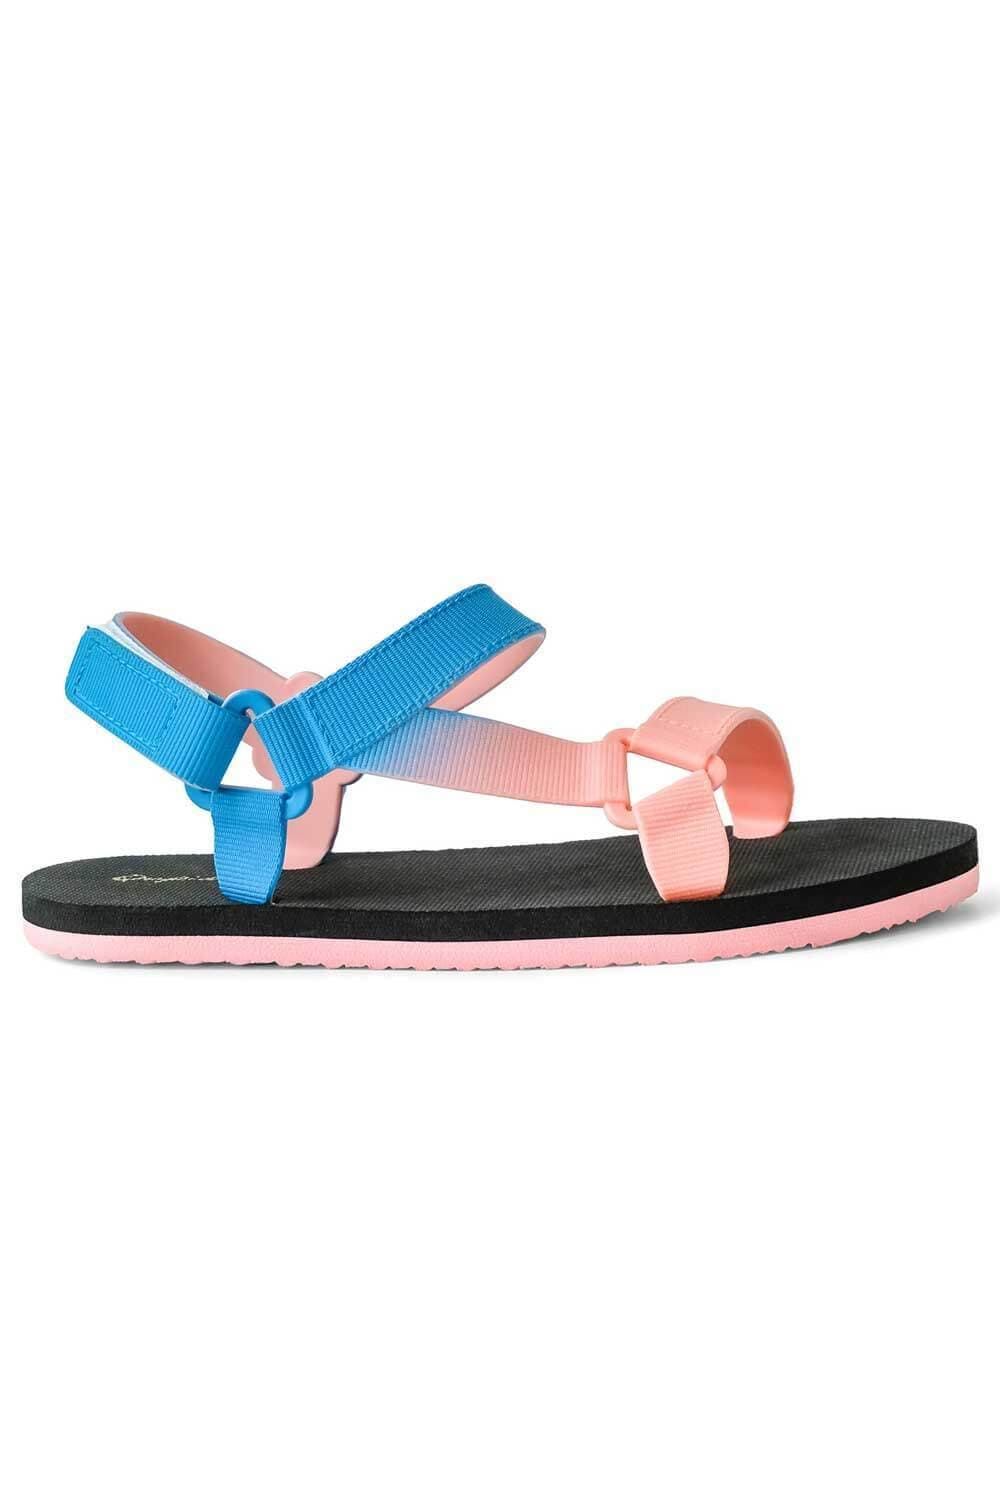 Icela Sandals Blue Pink side - MILK MONEY